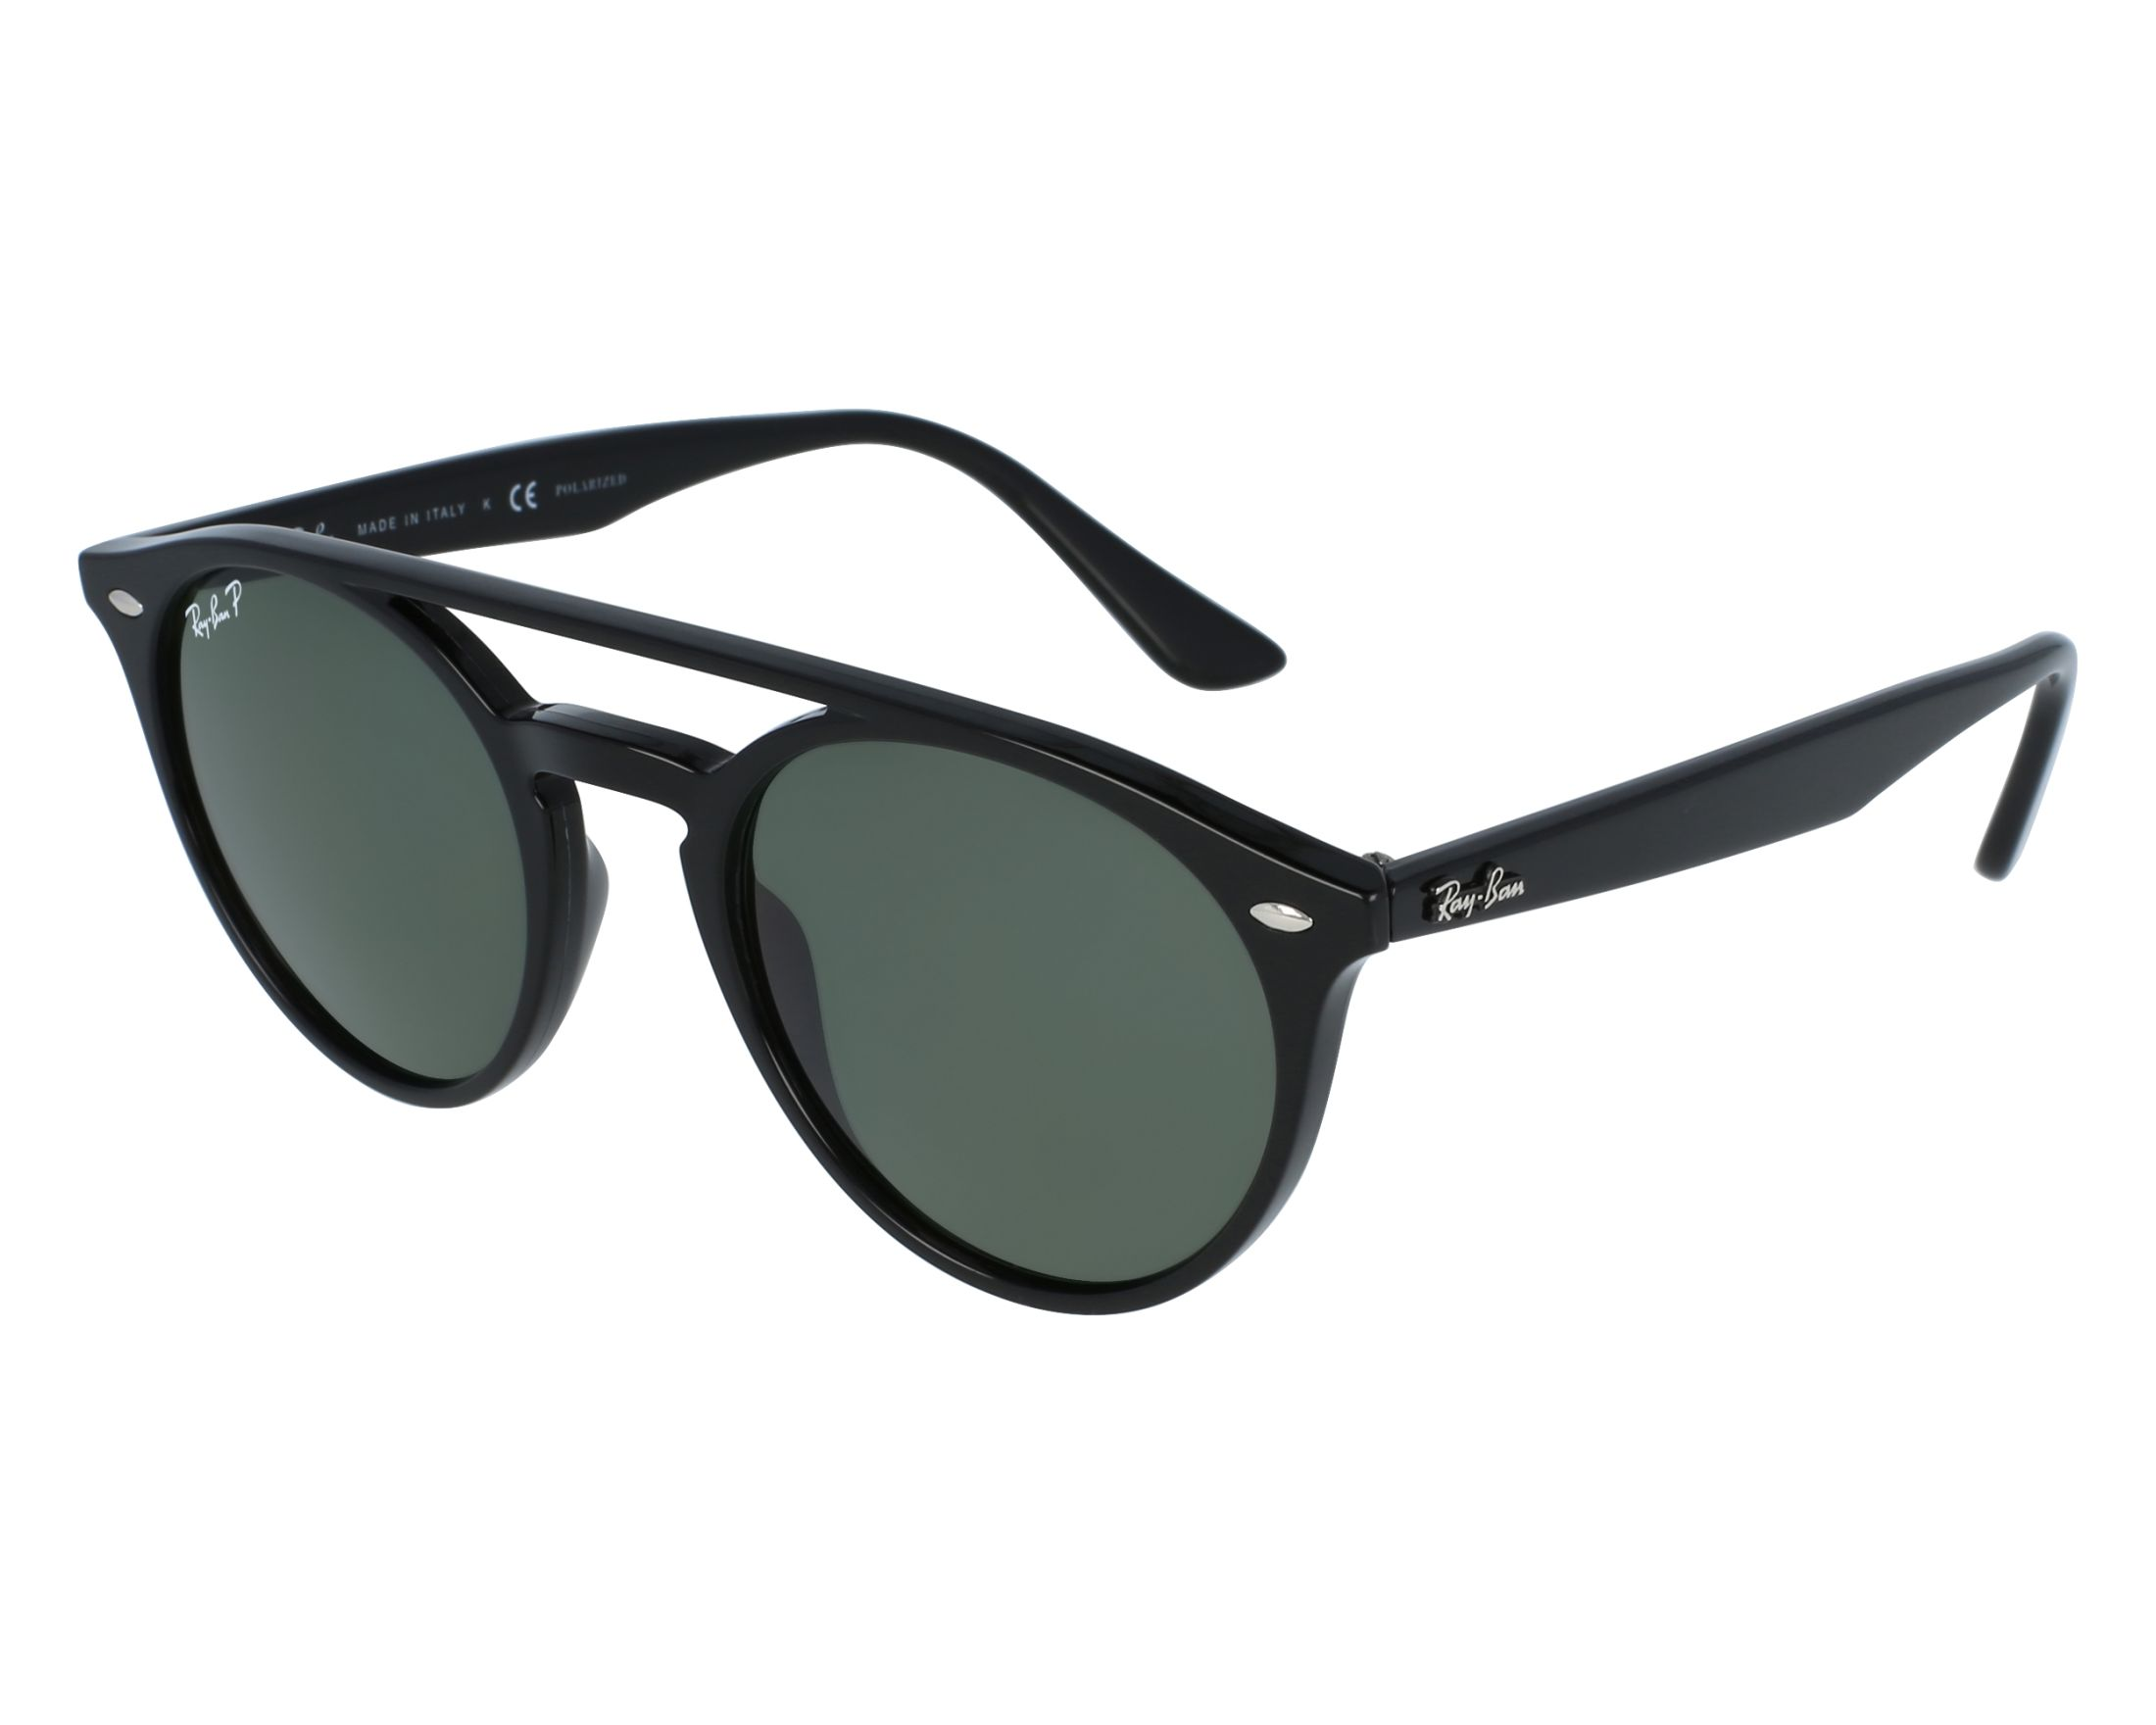 Ray-Ban Rb4279 601/9a 51-21 4aBdjcOByz